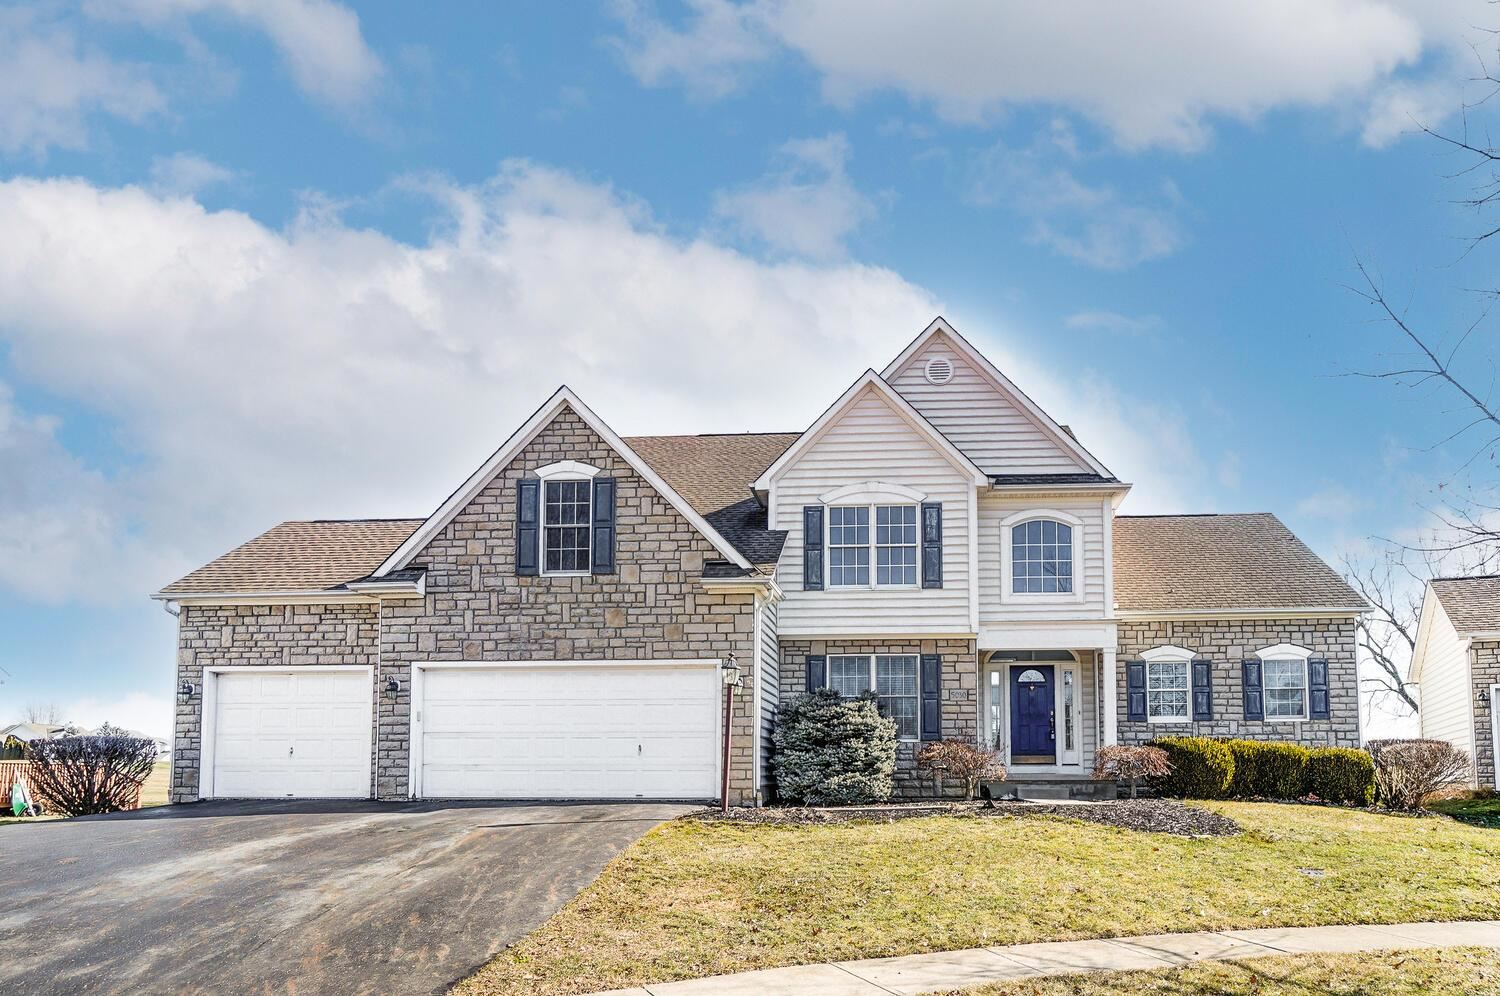 Photo of 5030 Regional Place, Powell, OH 43065 (MLS # 221005789)